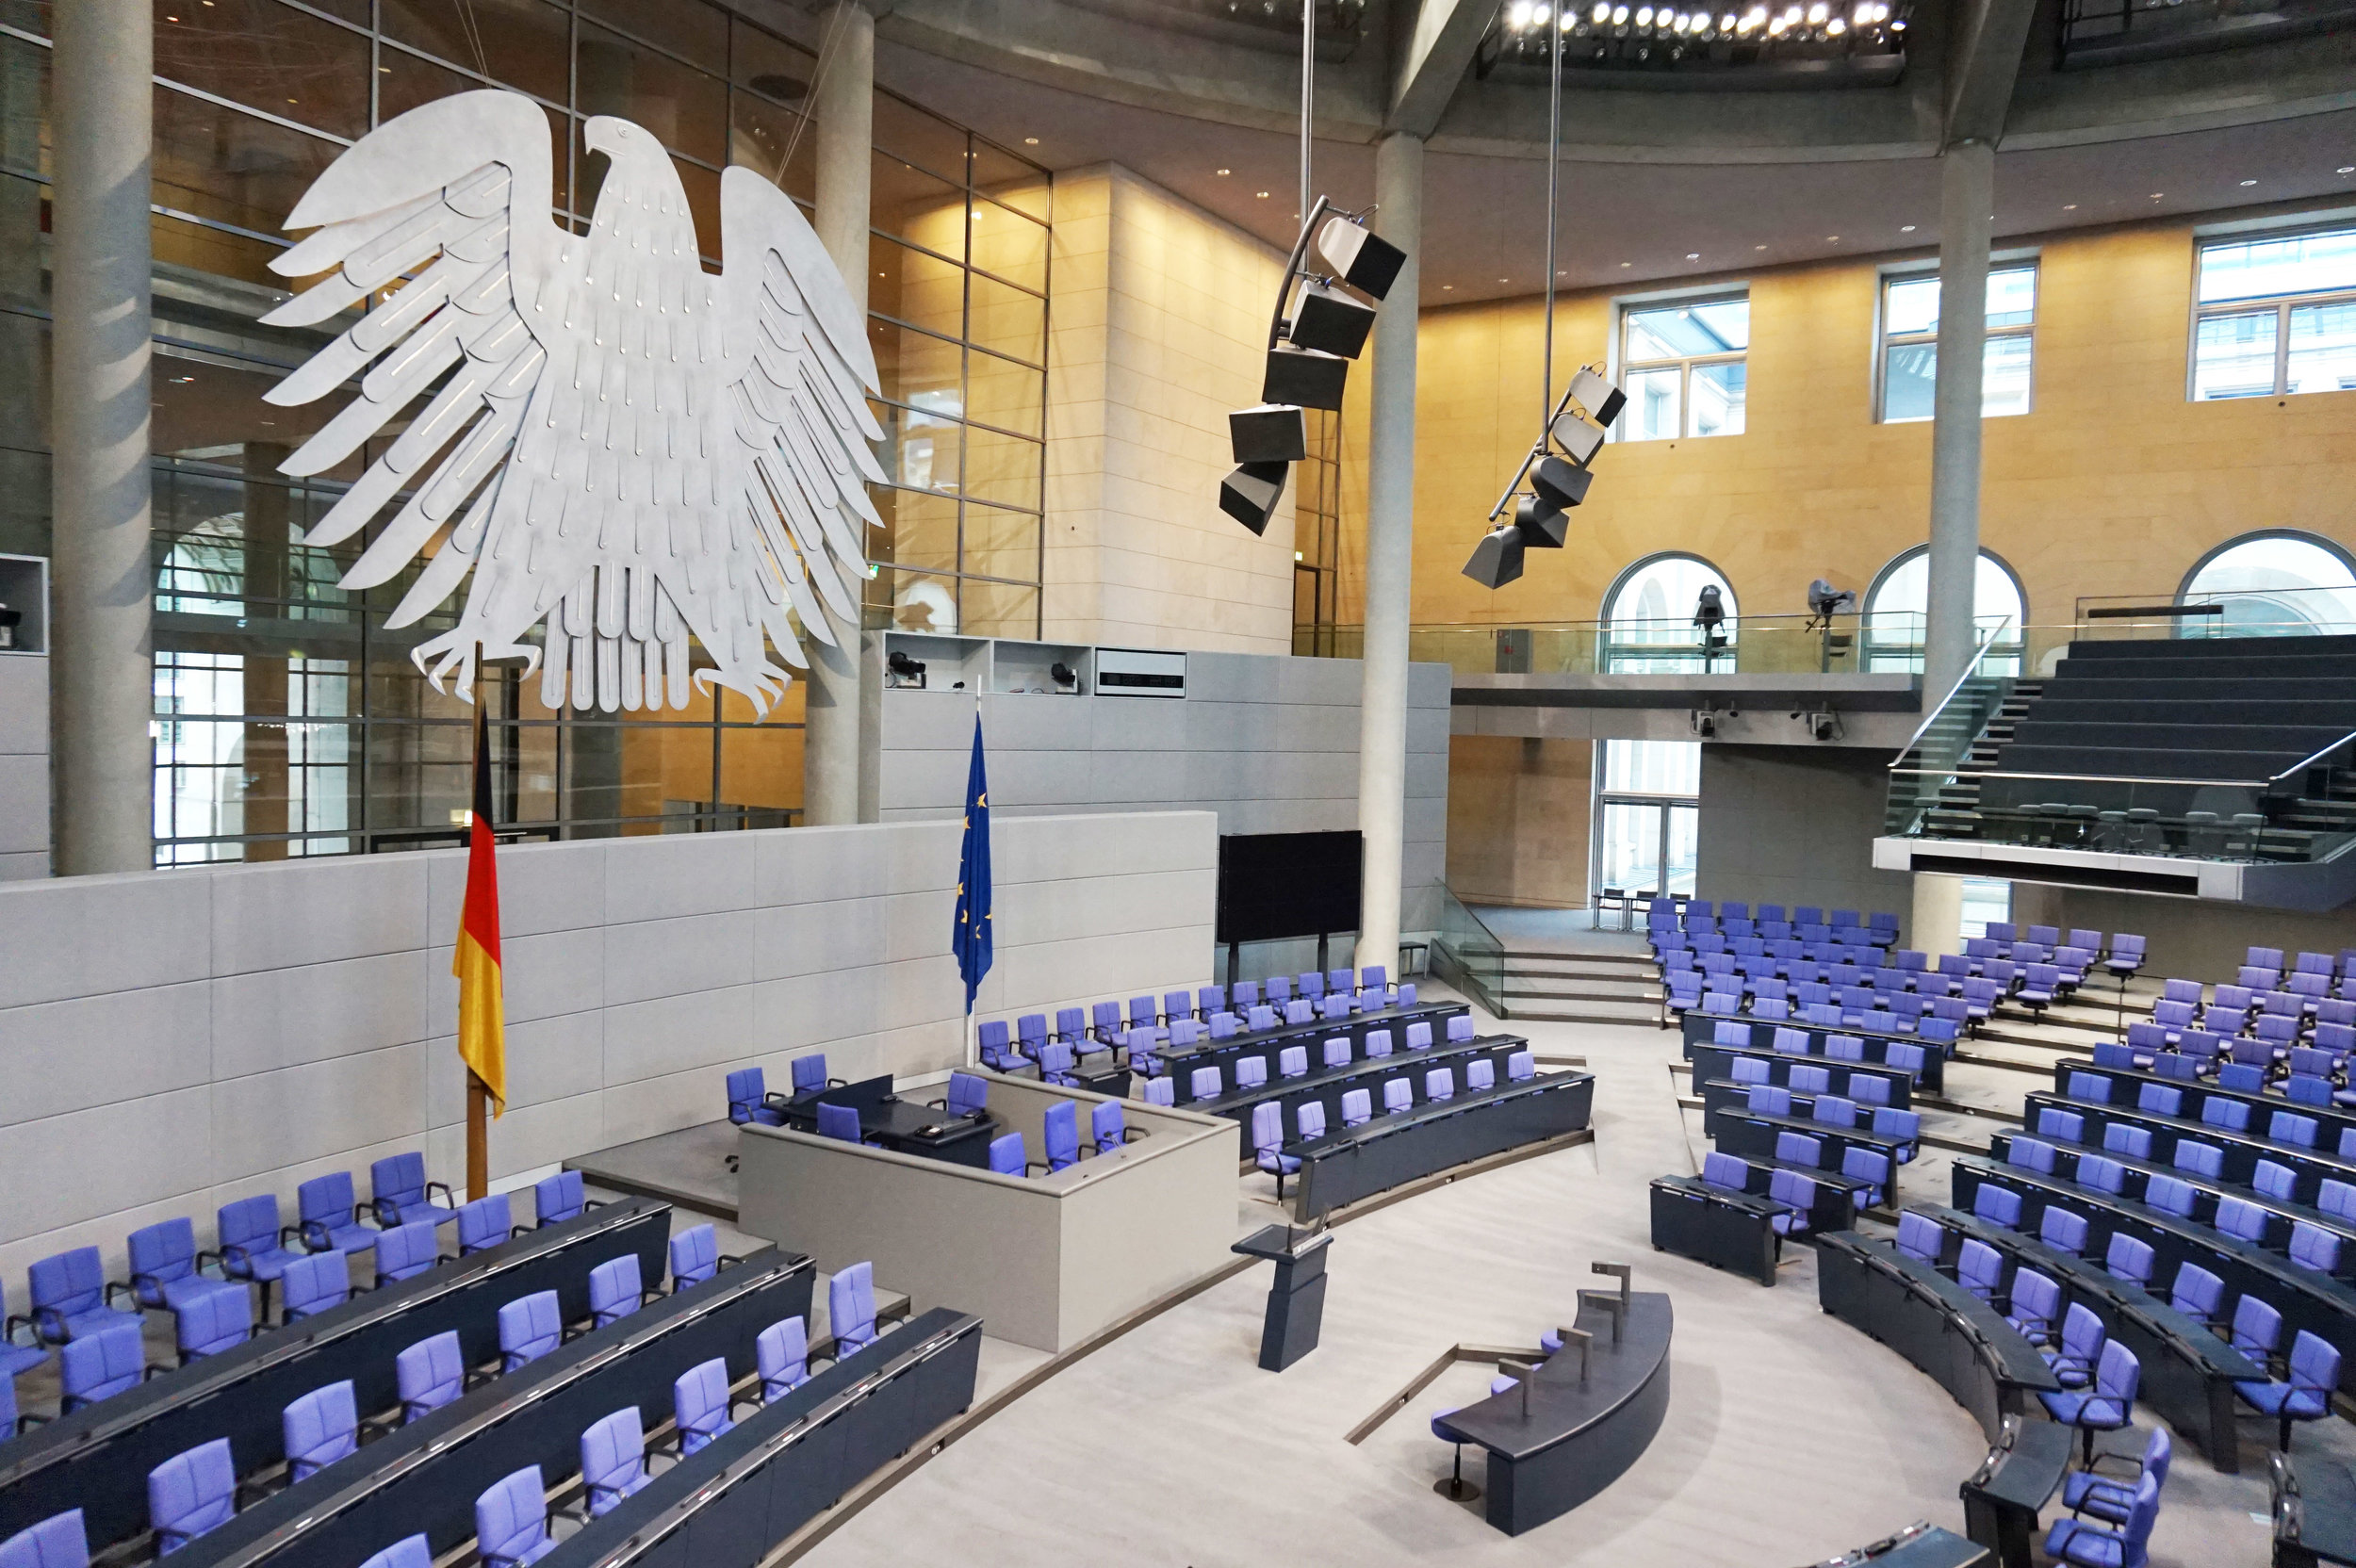 """The big, fat hen bearing the symbol of the German Bundestag amidst a sea of """"Reichstag blue"""" seats specially designed for the German Parliament"""